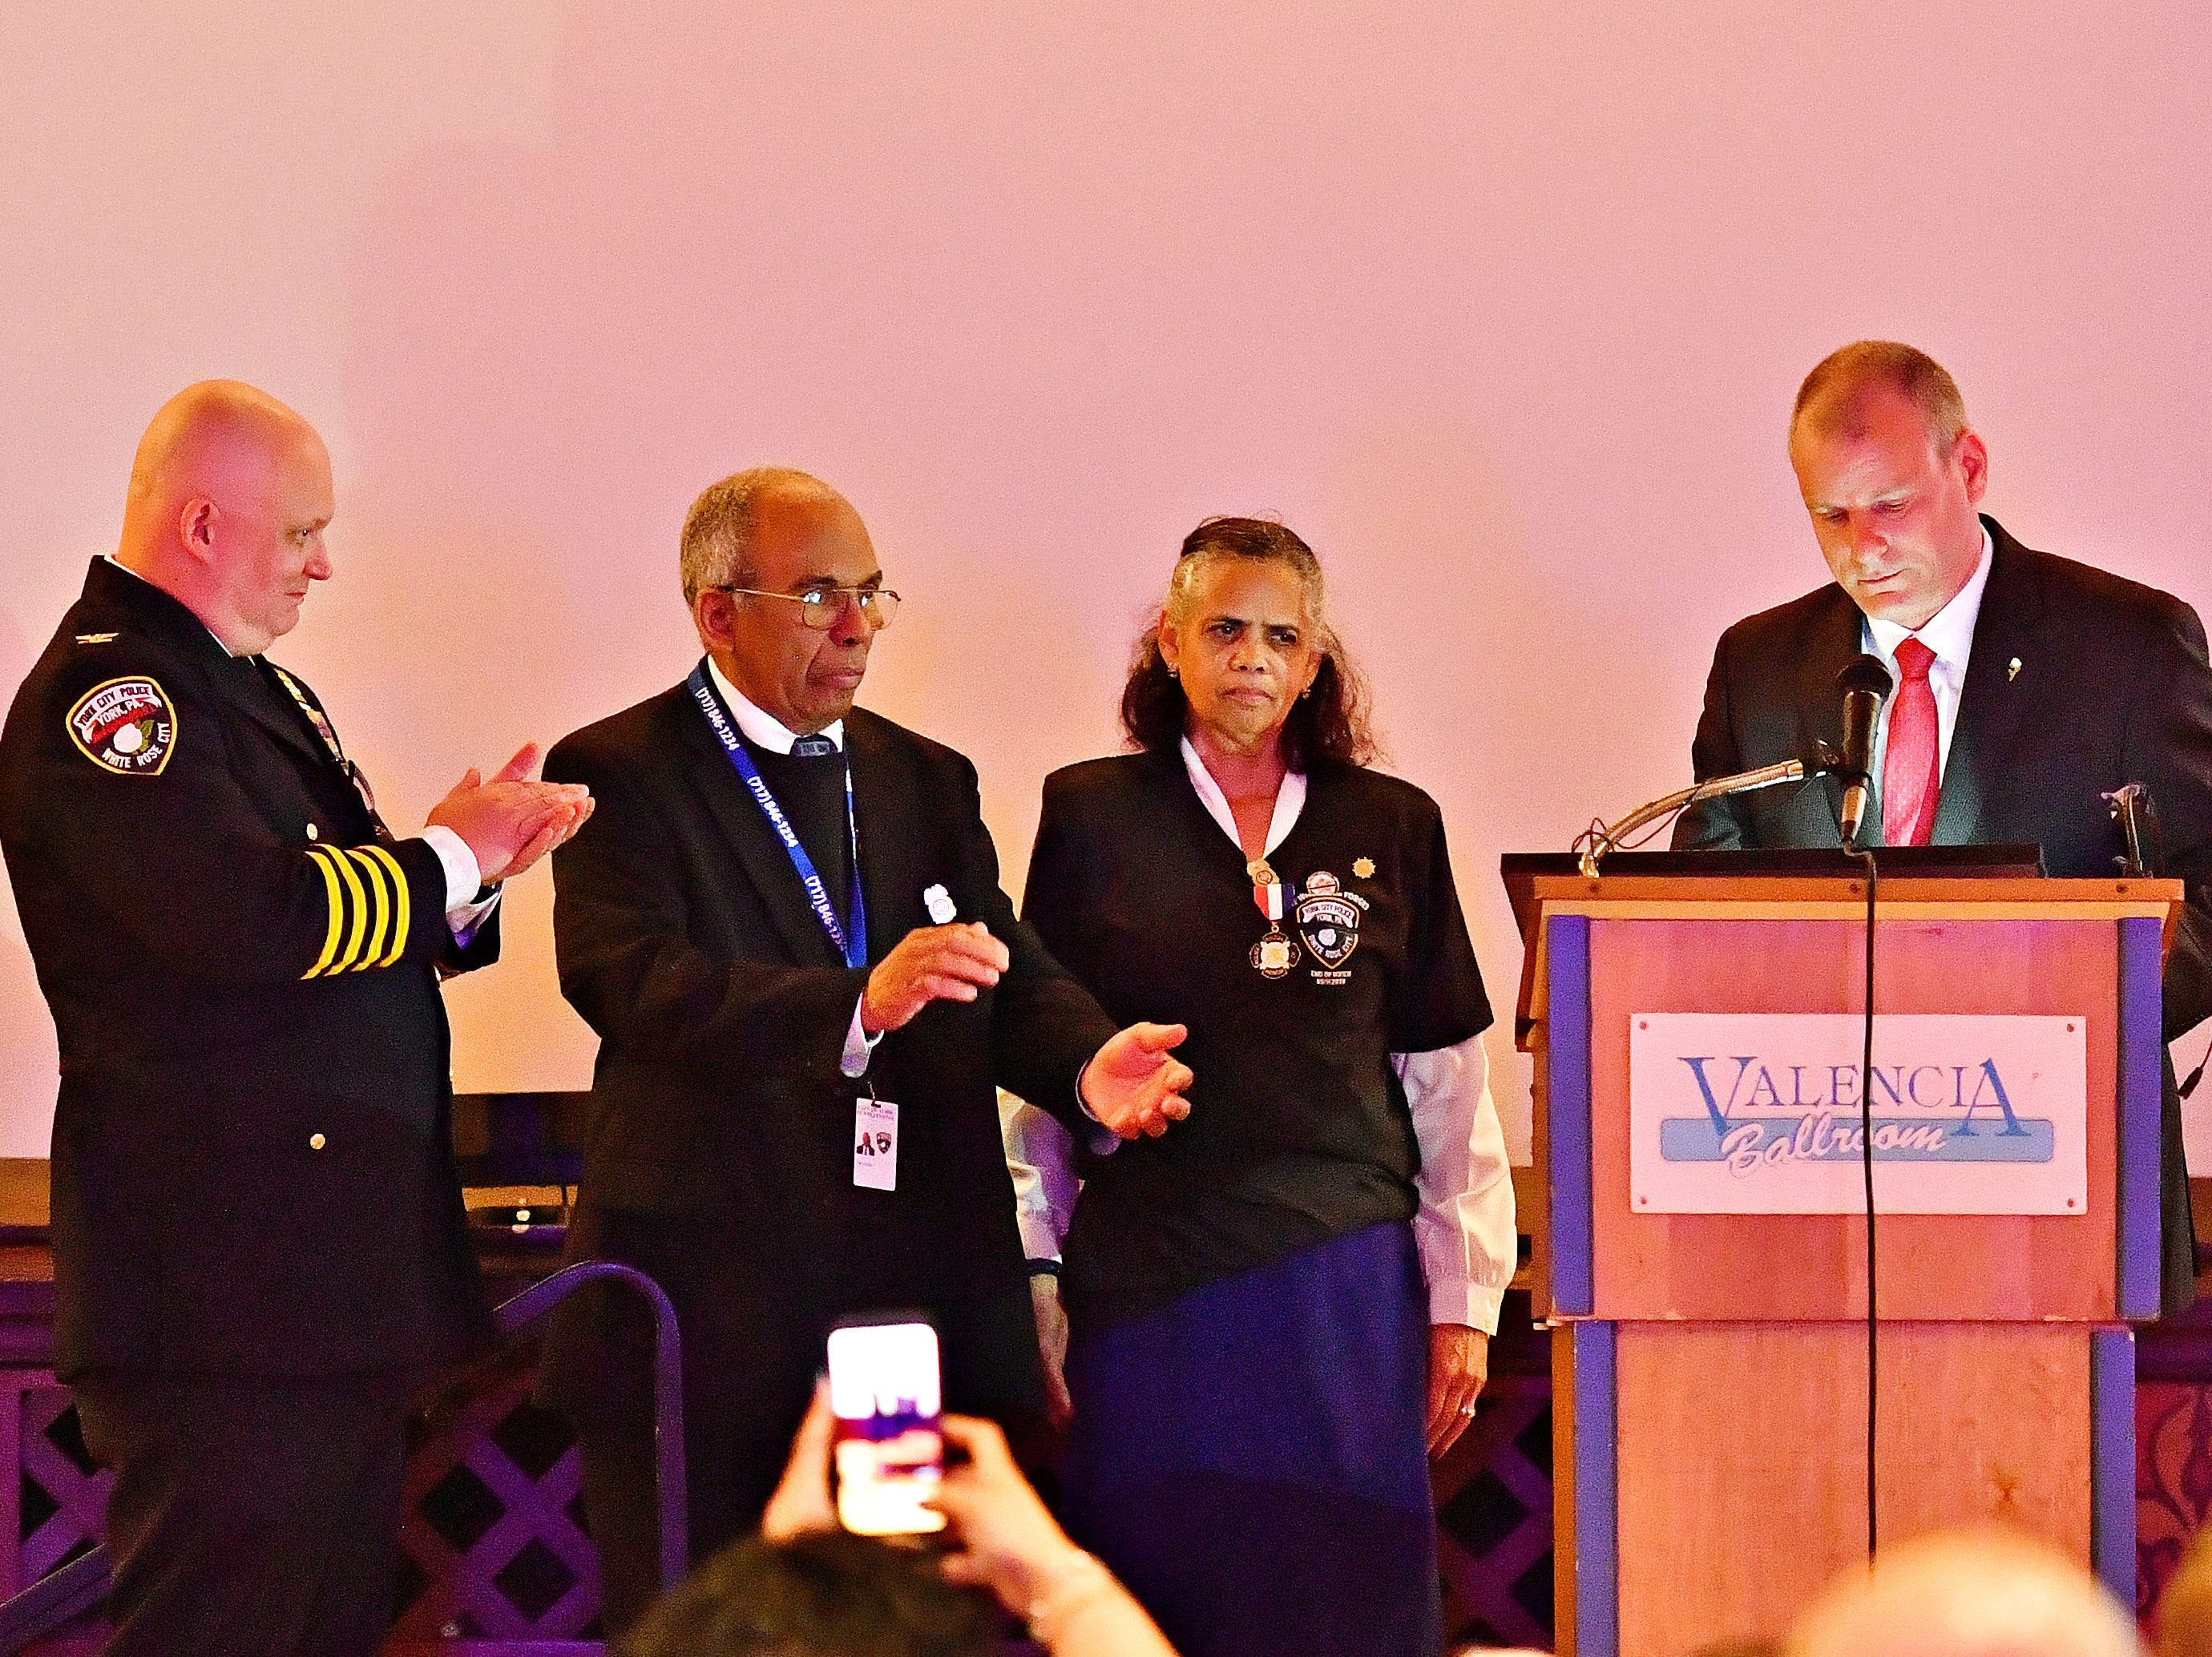 From left, York City Police Chief Troy Bankert, and Chaplains Alix and Arelis Sable look on as York City Mayor Michael Helfrich reads the official proclamation retiring badge number 187 during the York City Police Departmental Awards Ceremony at Valencia Ballroom in York City, Thursday, May 9, 2019. The badge number belonged to the Sables' son, Officer Alex Sable, 37, who died in the line of duty. Dawn J. Sagert photo